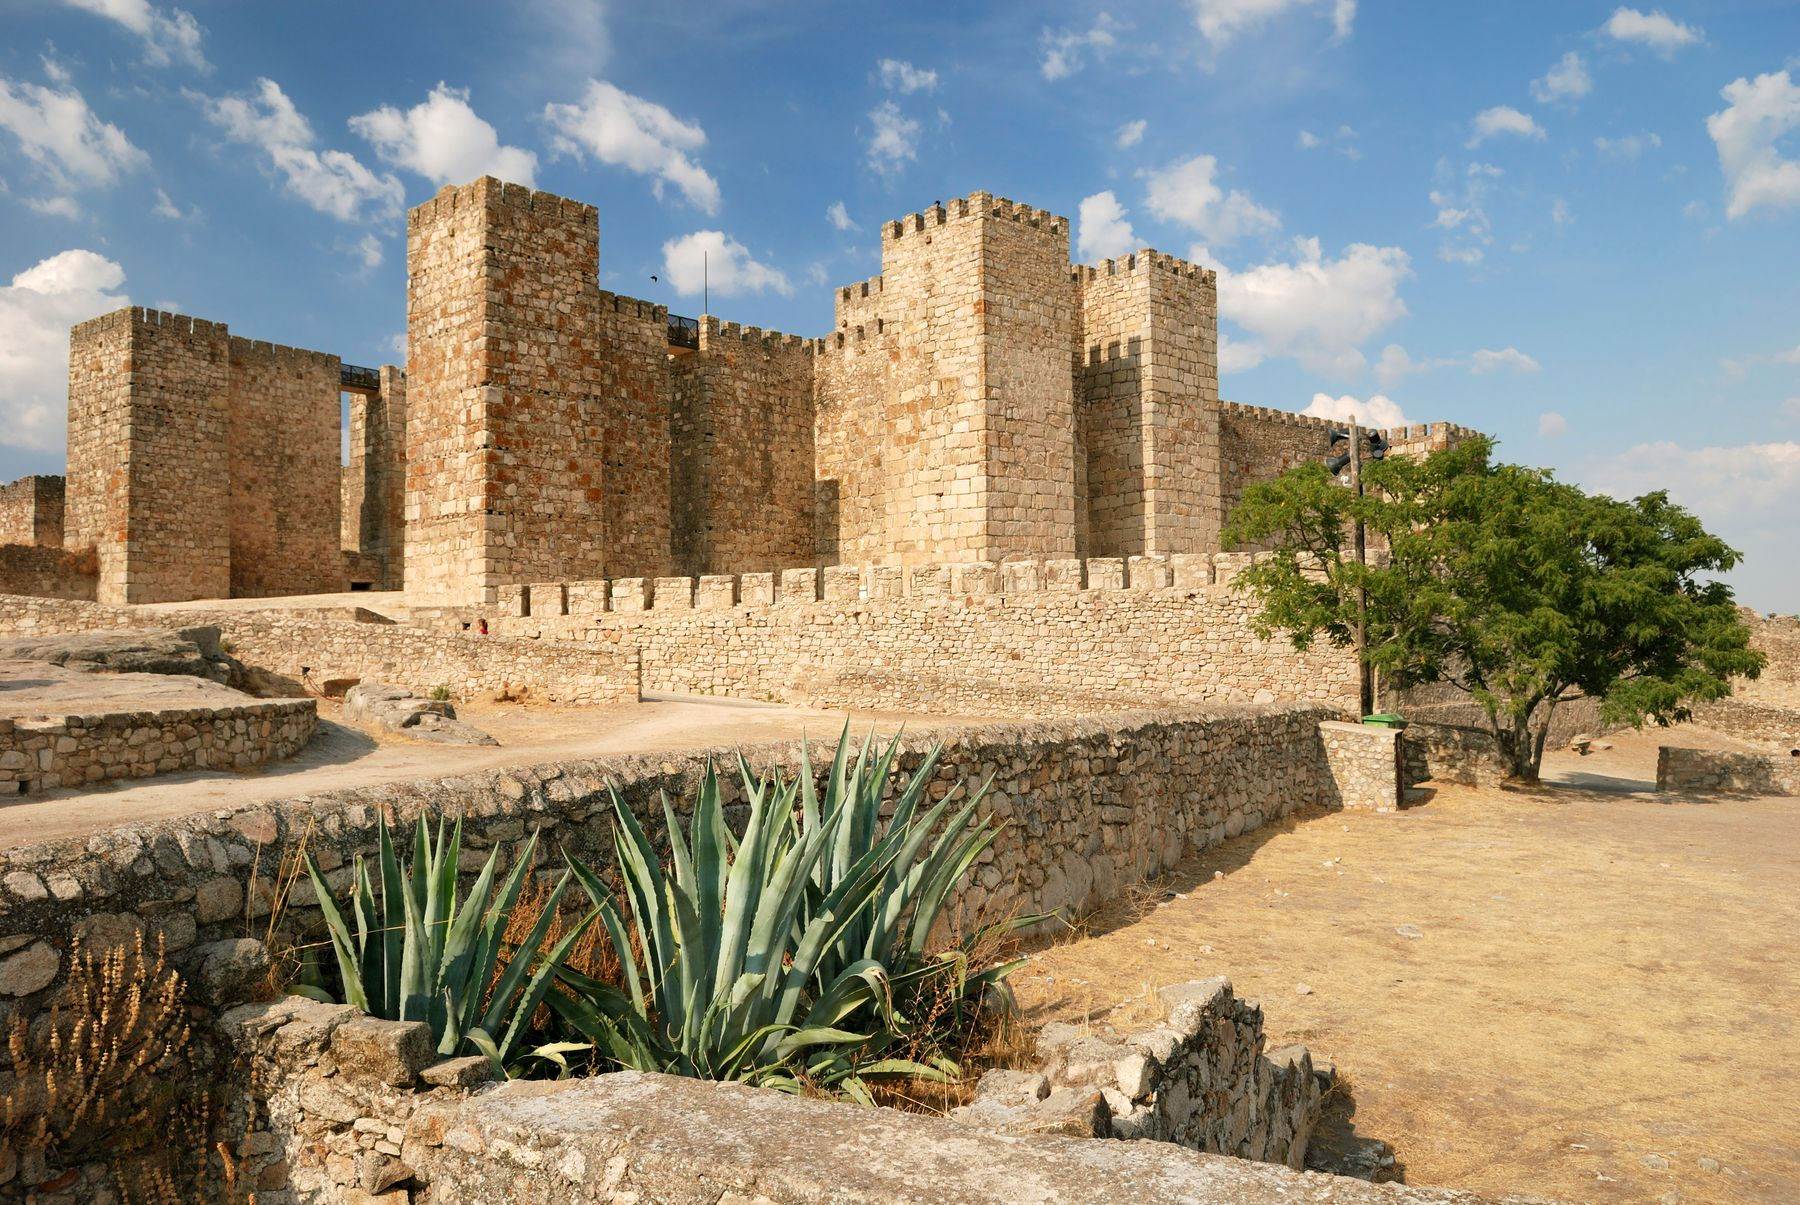 exterior of a castle in Spain